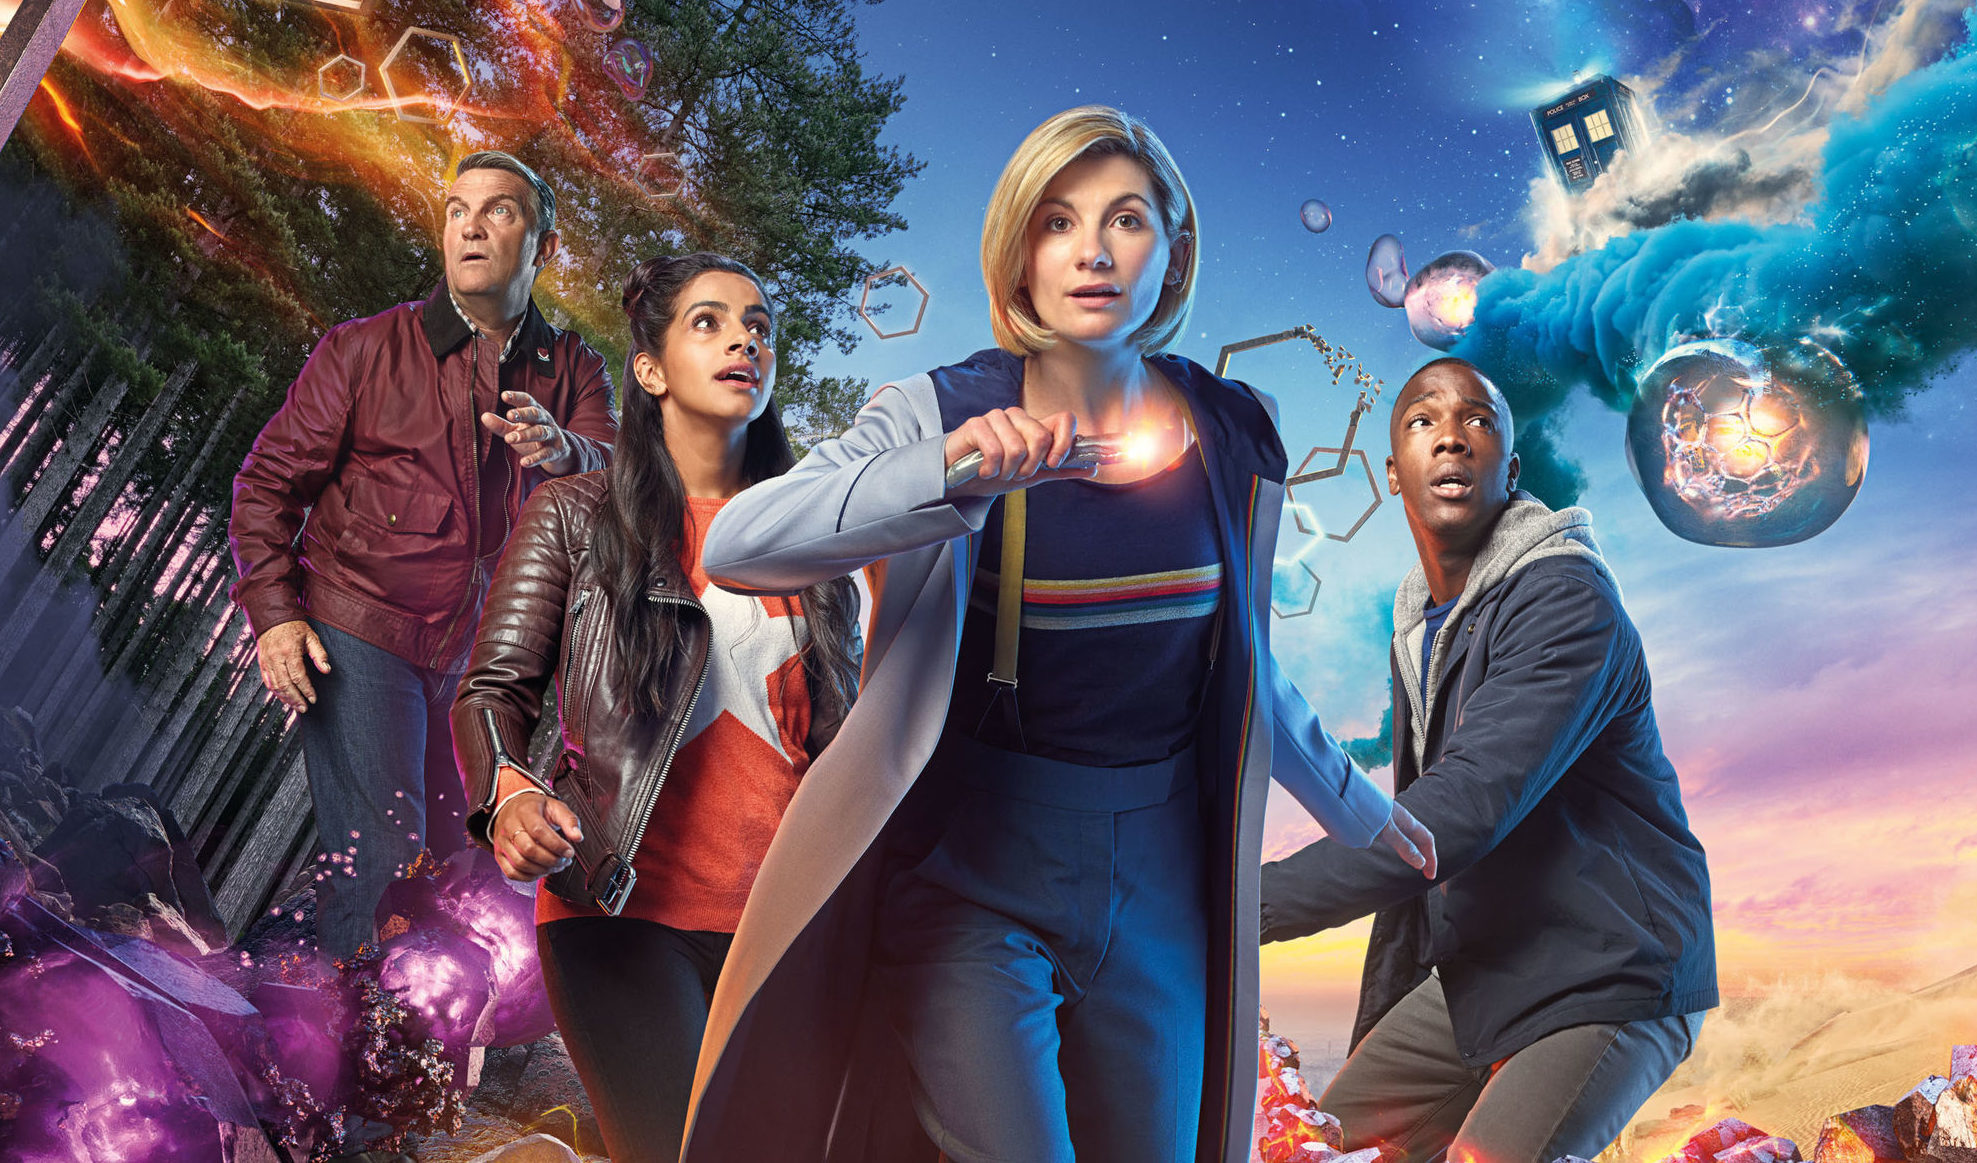 Jodie Whittaker as The Doctor with (left to right) Bradley Walsh as Graham, Mandip Gill as Yaz and Tosin Cole as Ryan (Henrik Knudsen/BBC/PA Wire)